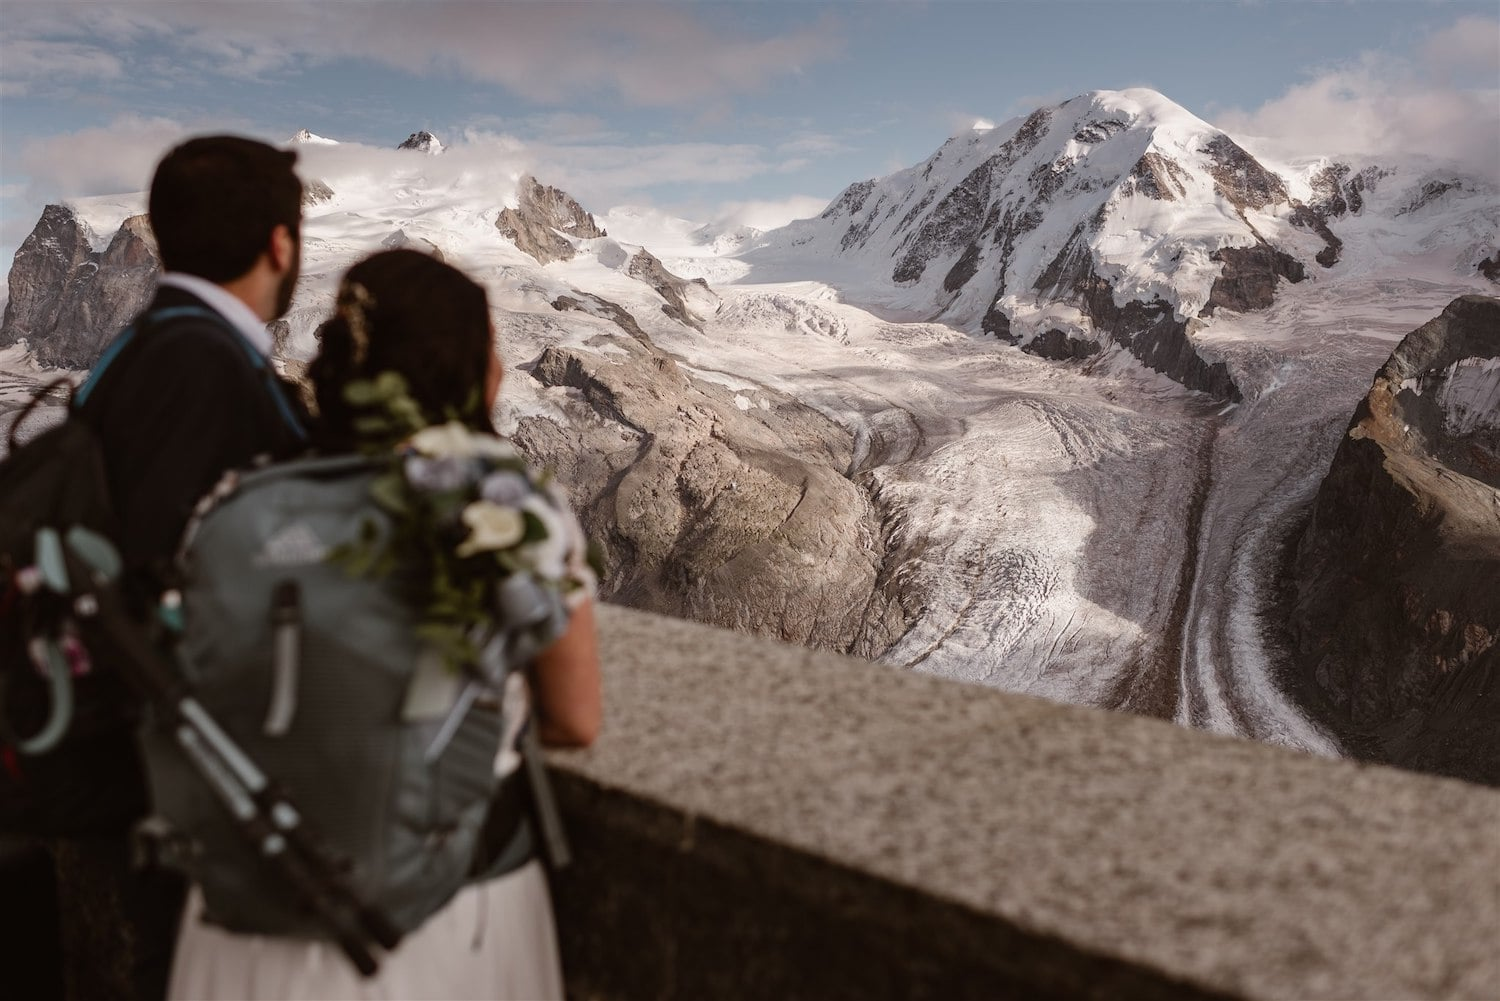 Couple looking at the mountain after their elopement ceremony in Switzerland